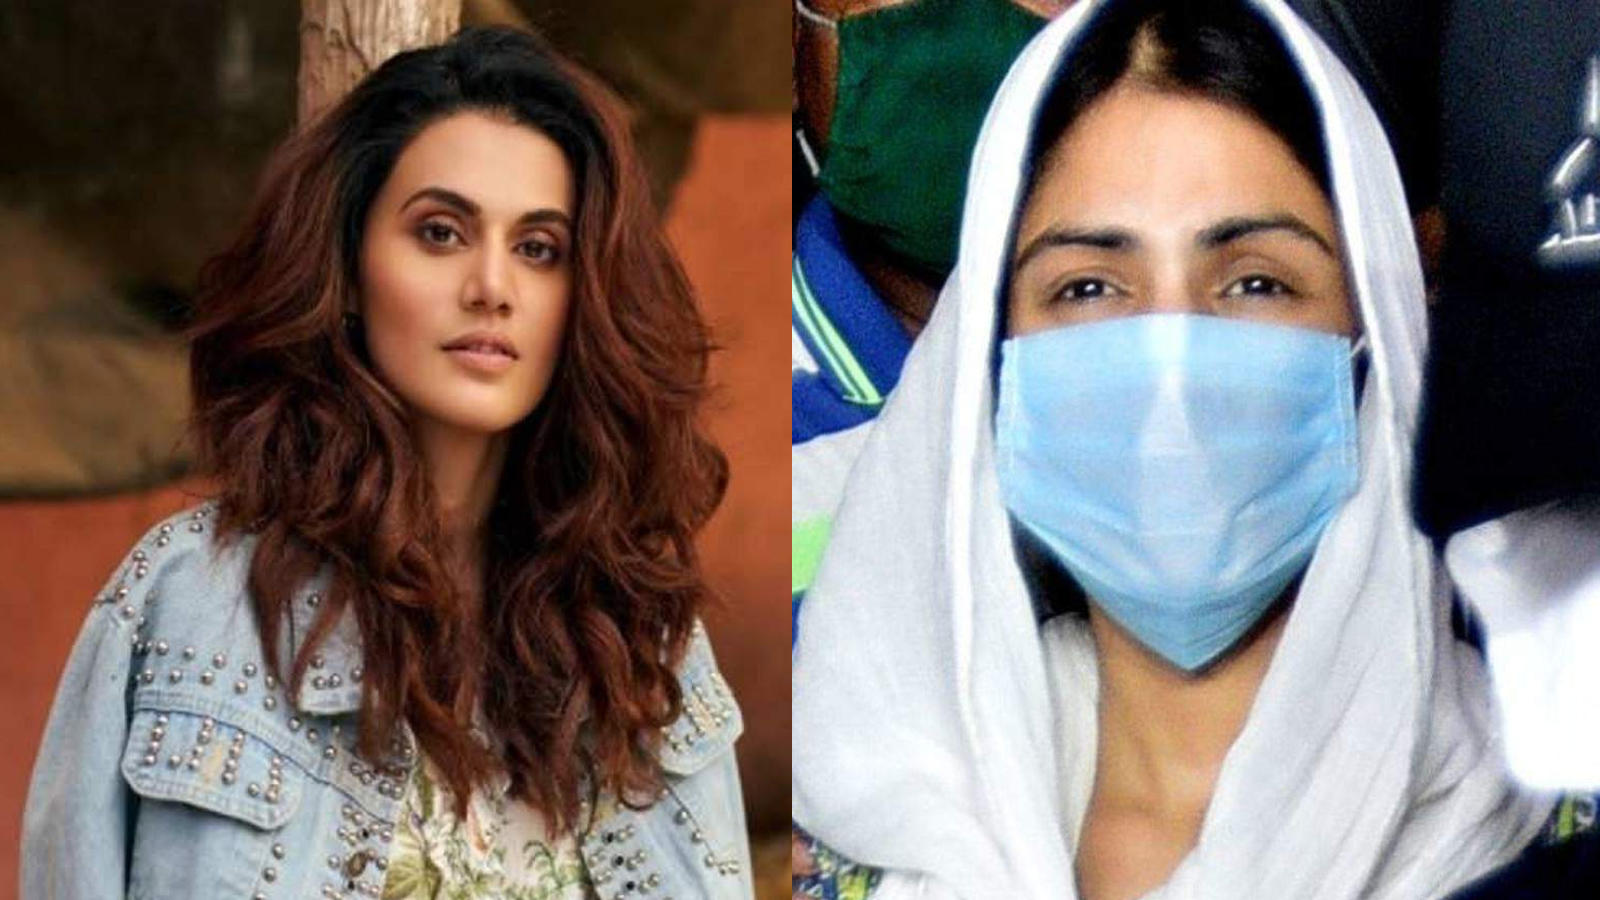 Taapsee Pannu reveals she felt compelled to speak for Rhea Chakraborty while Kangana Ranaut's words don't affect her